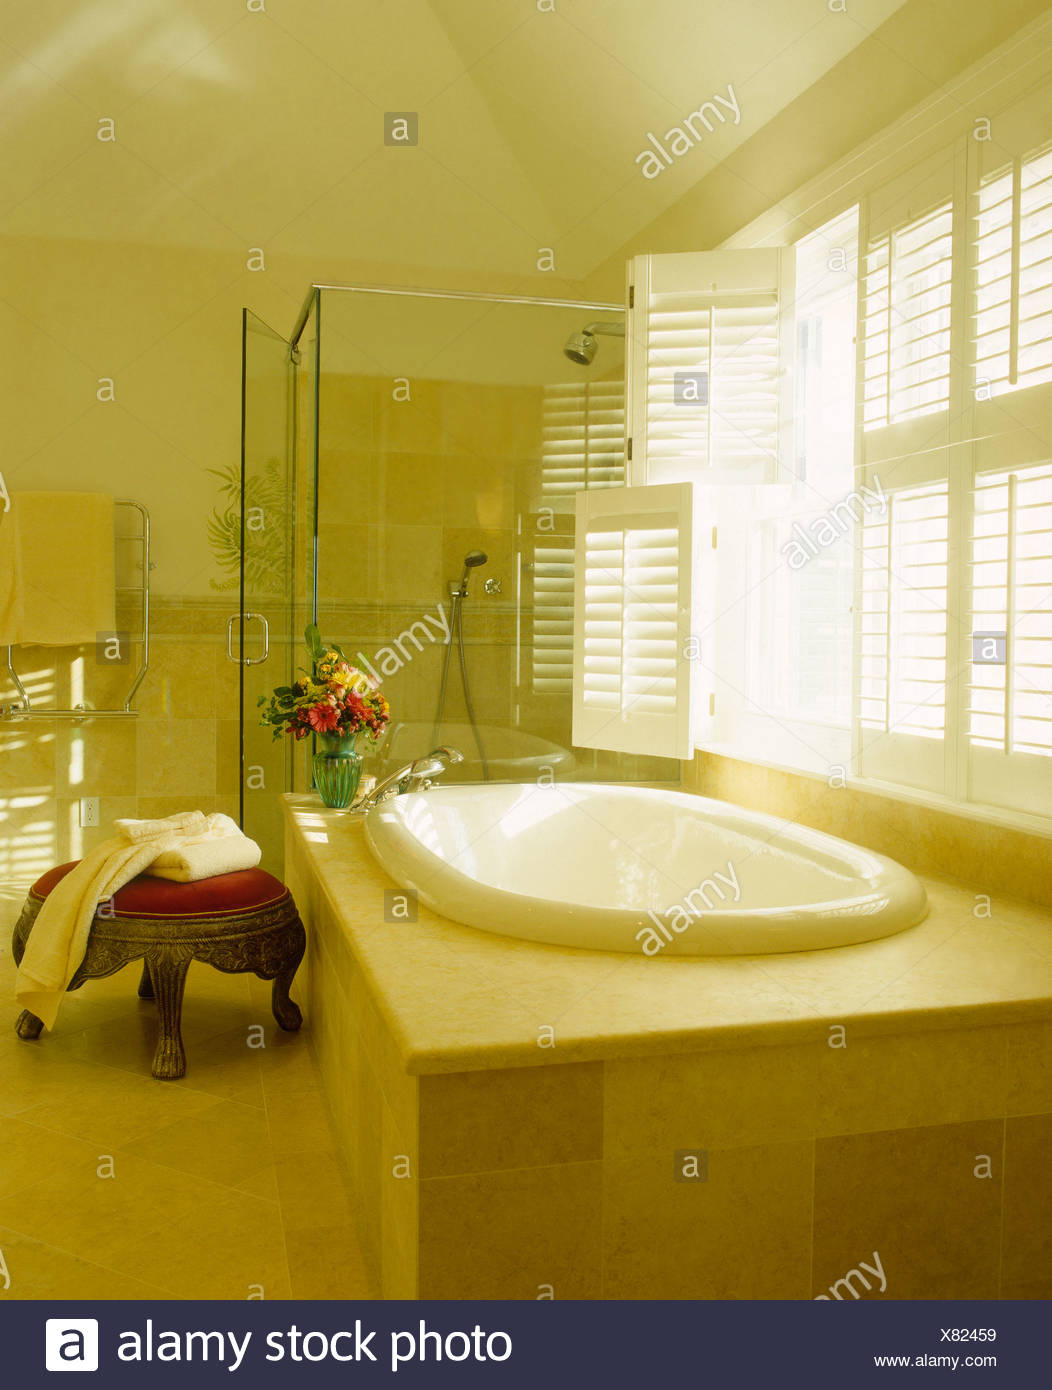 Oval Bath With Pale Wood Surround Below Window With